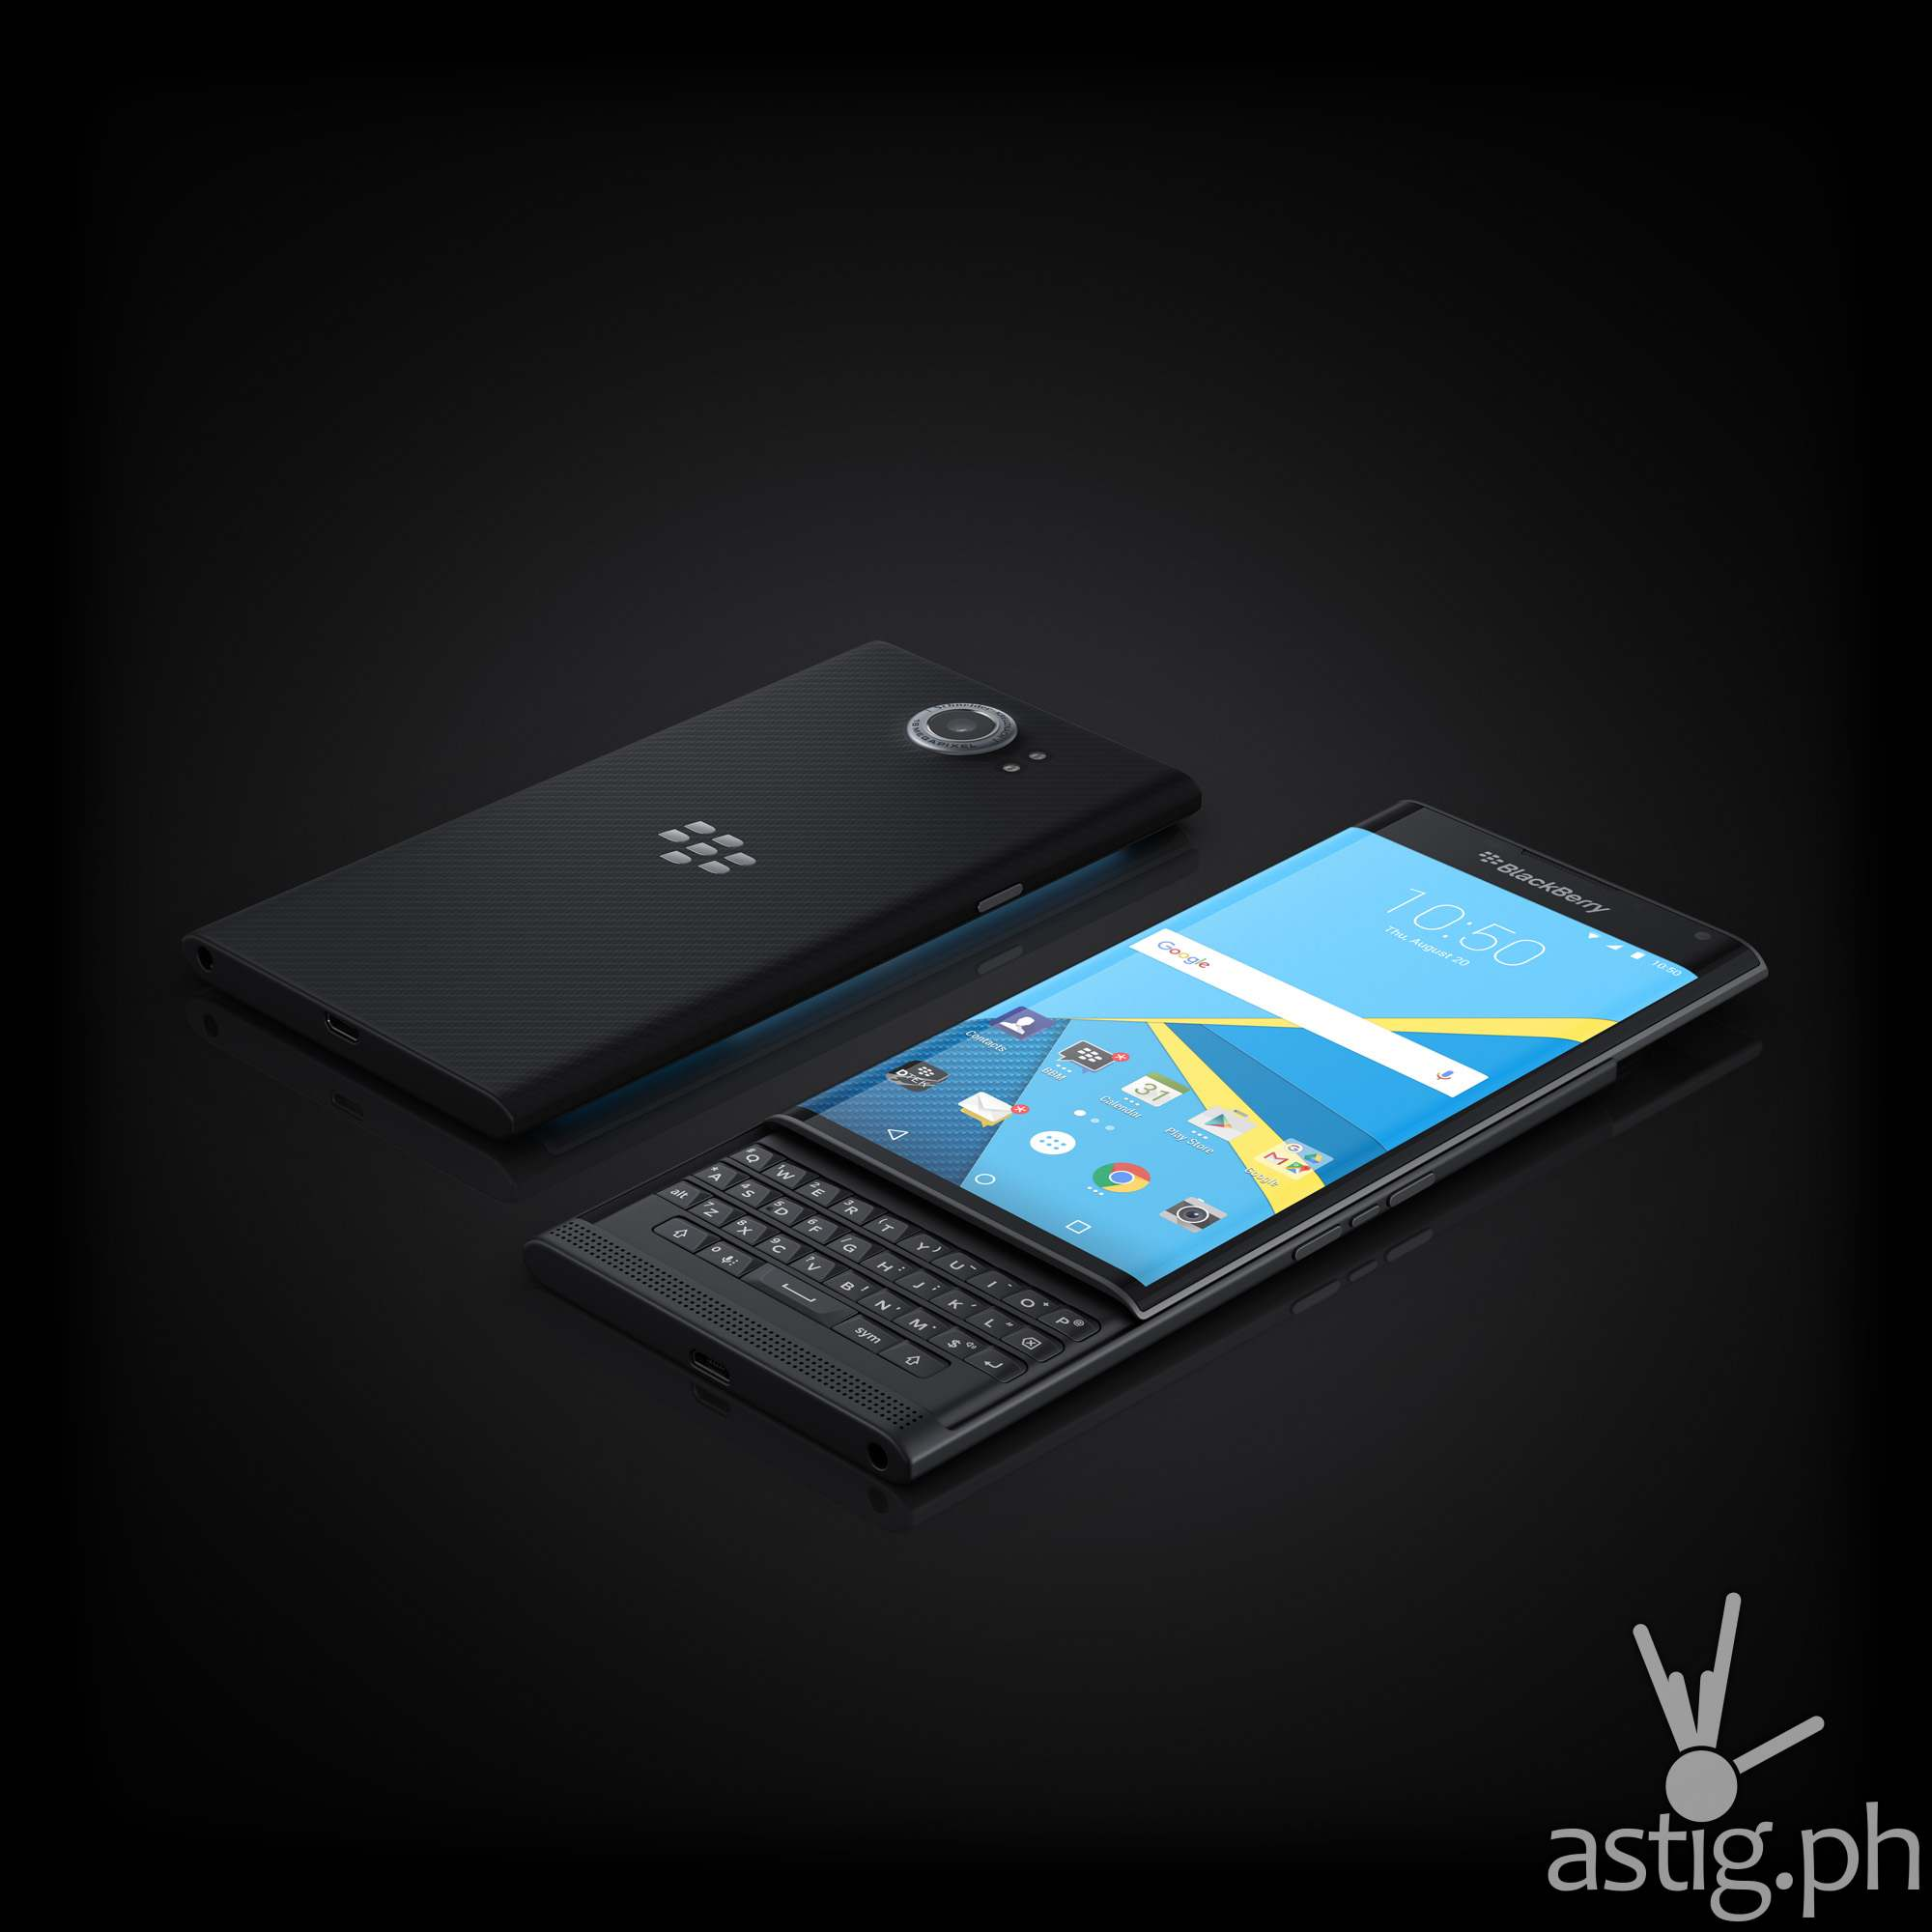 BlackBerry PRIV Android smartphone: features, availability